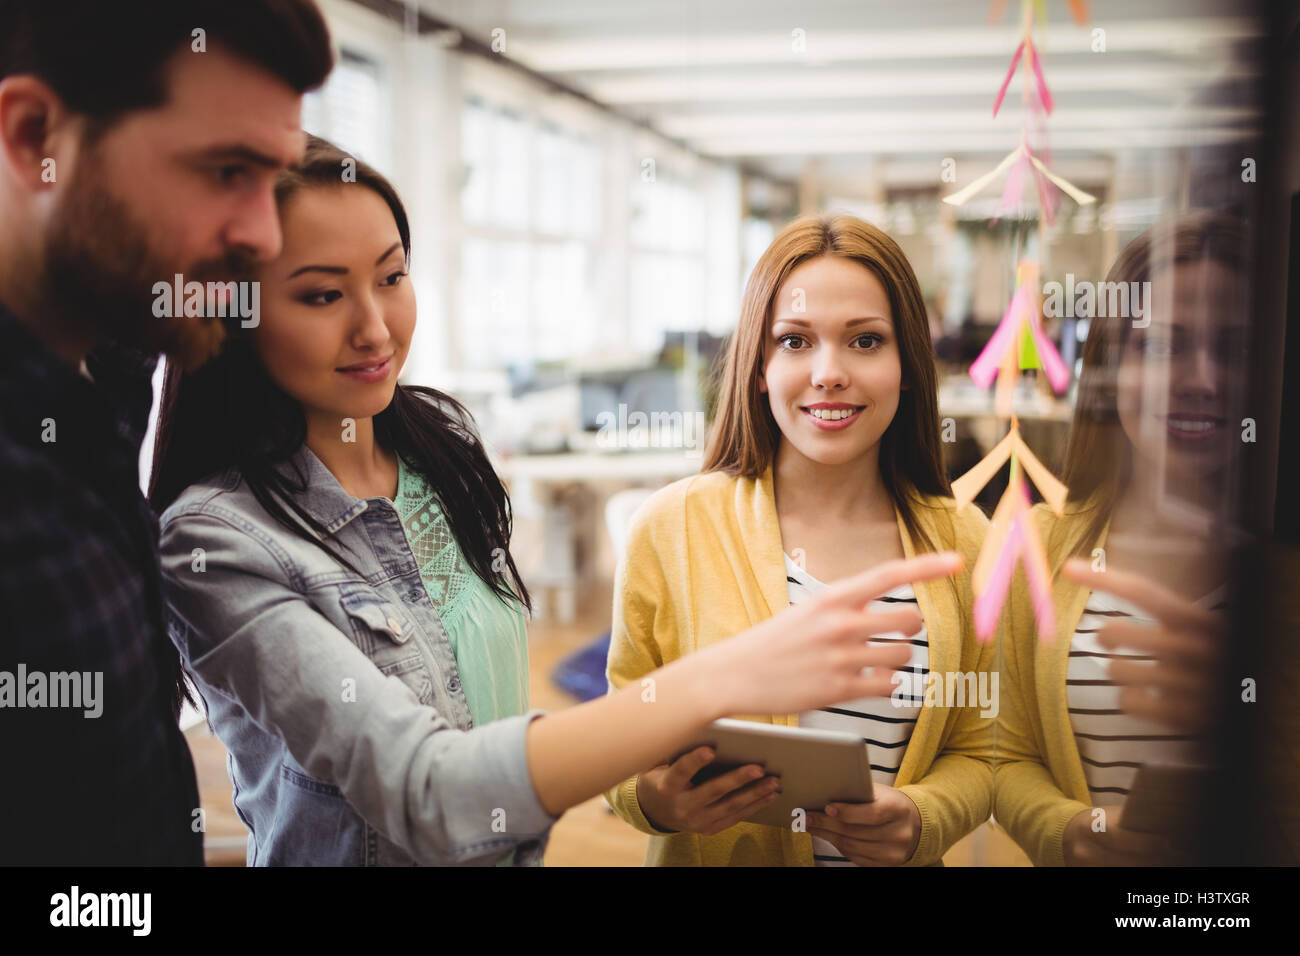 Female photo editor standing near coworkers pointing on sticky note - Stock Image